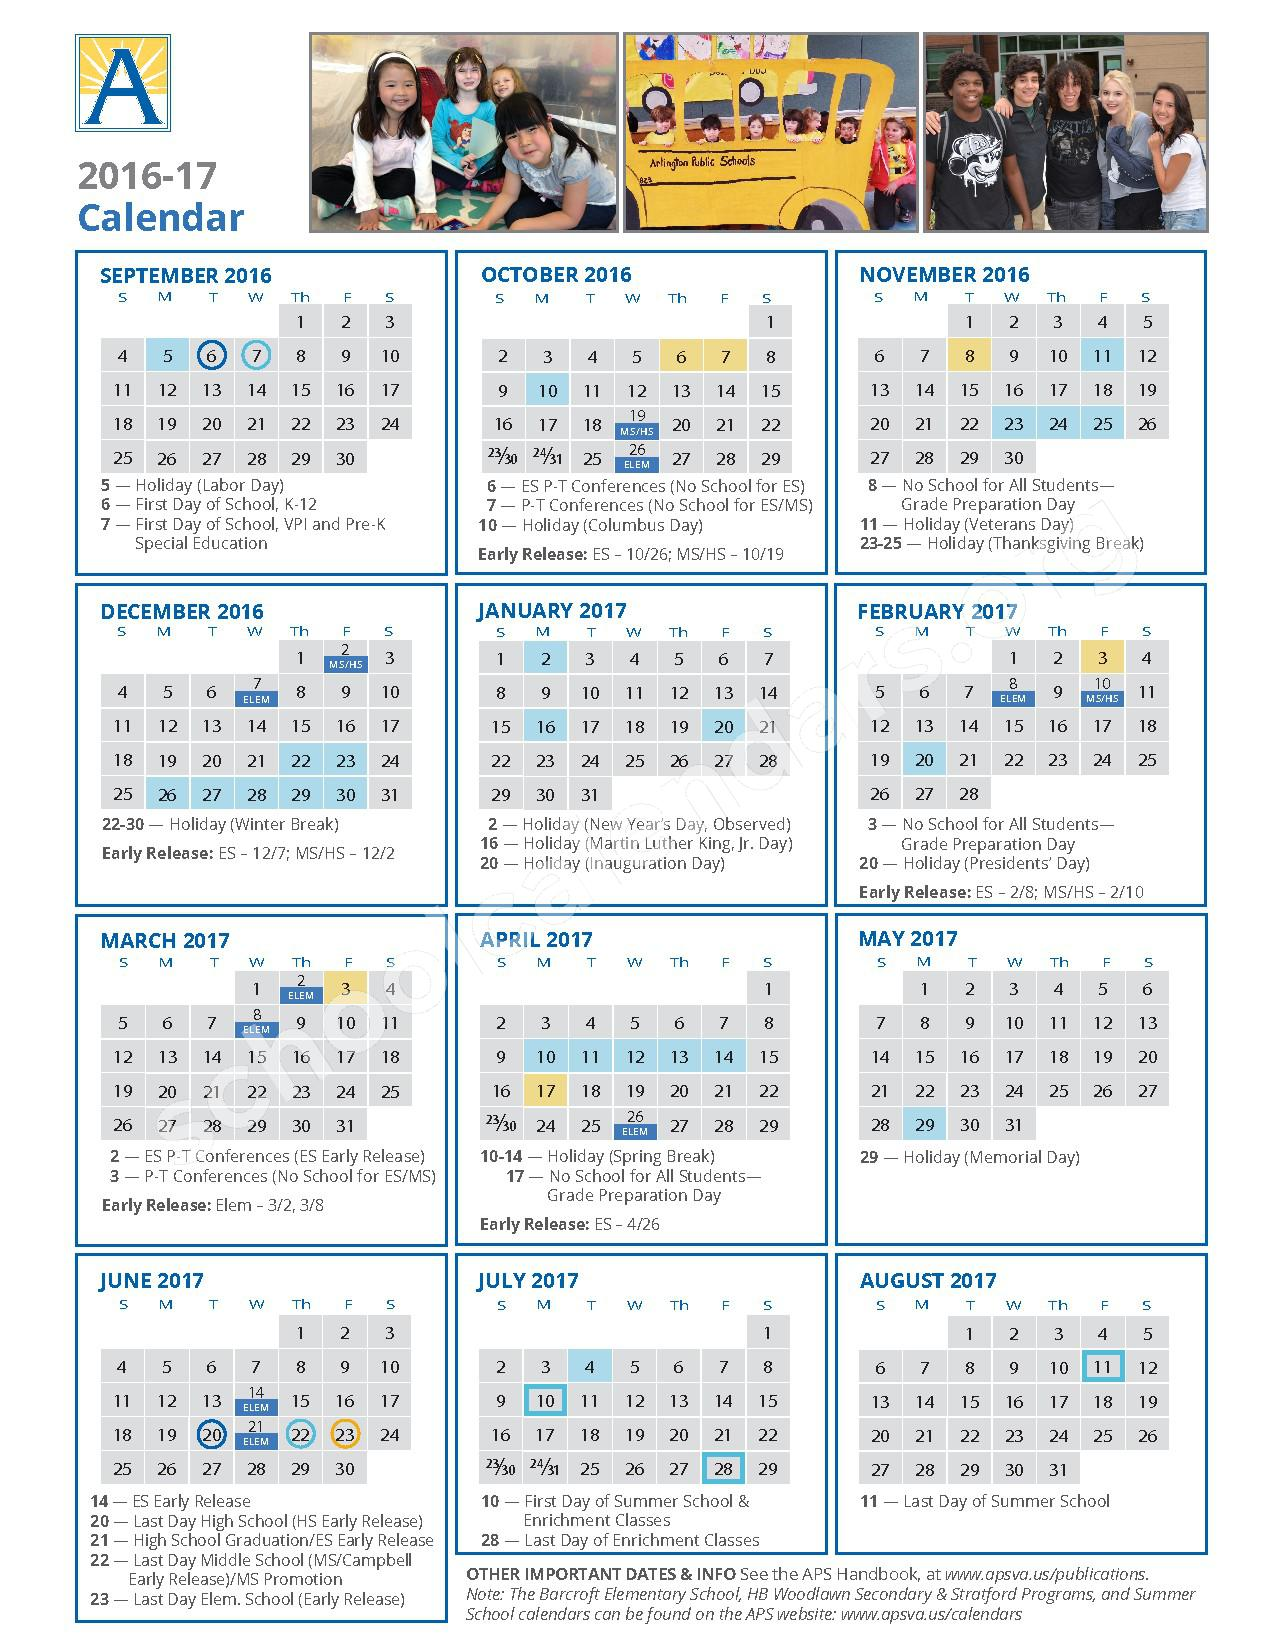 2016 - 2017 School Calendar / Calendario Escolar – Ashlawn Elementary School – page 1